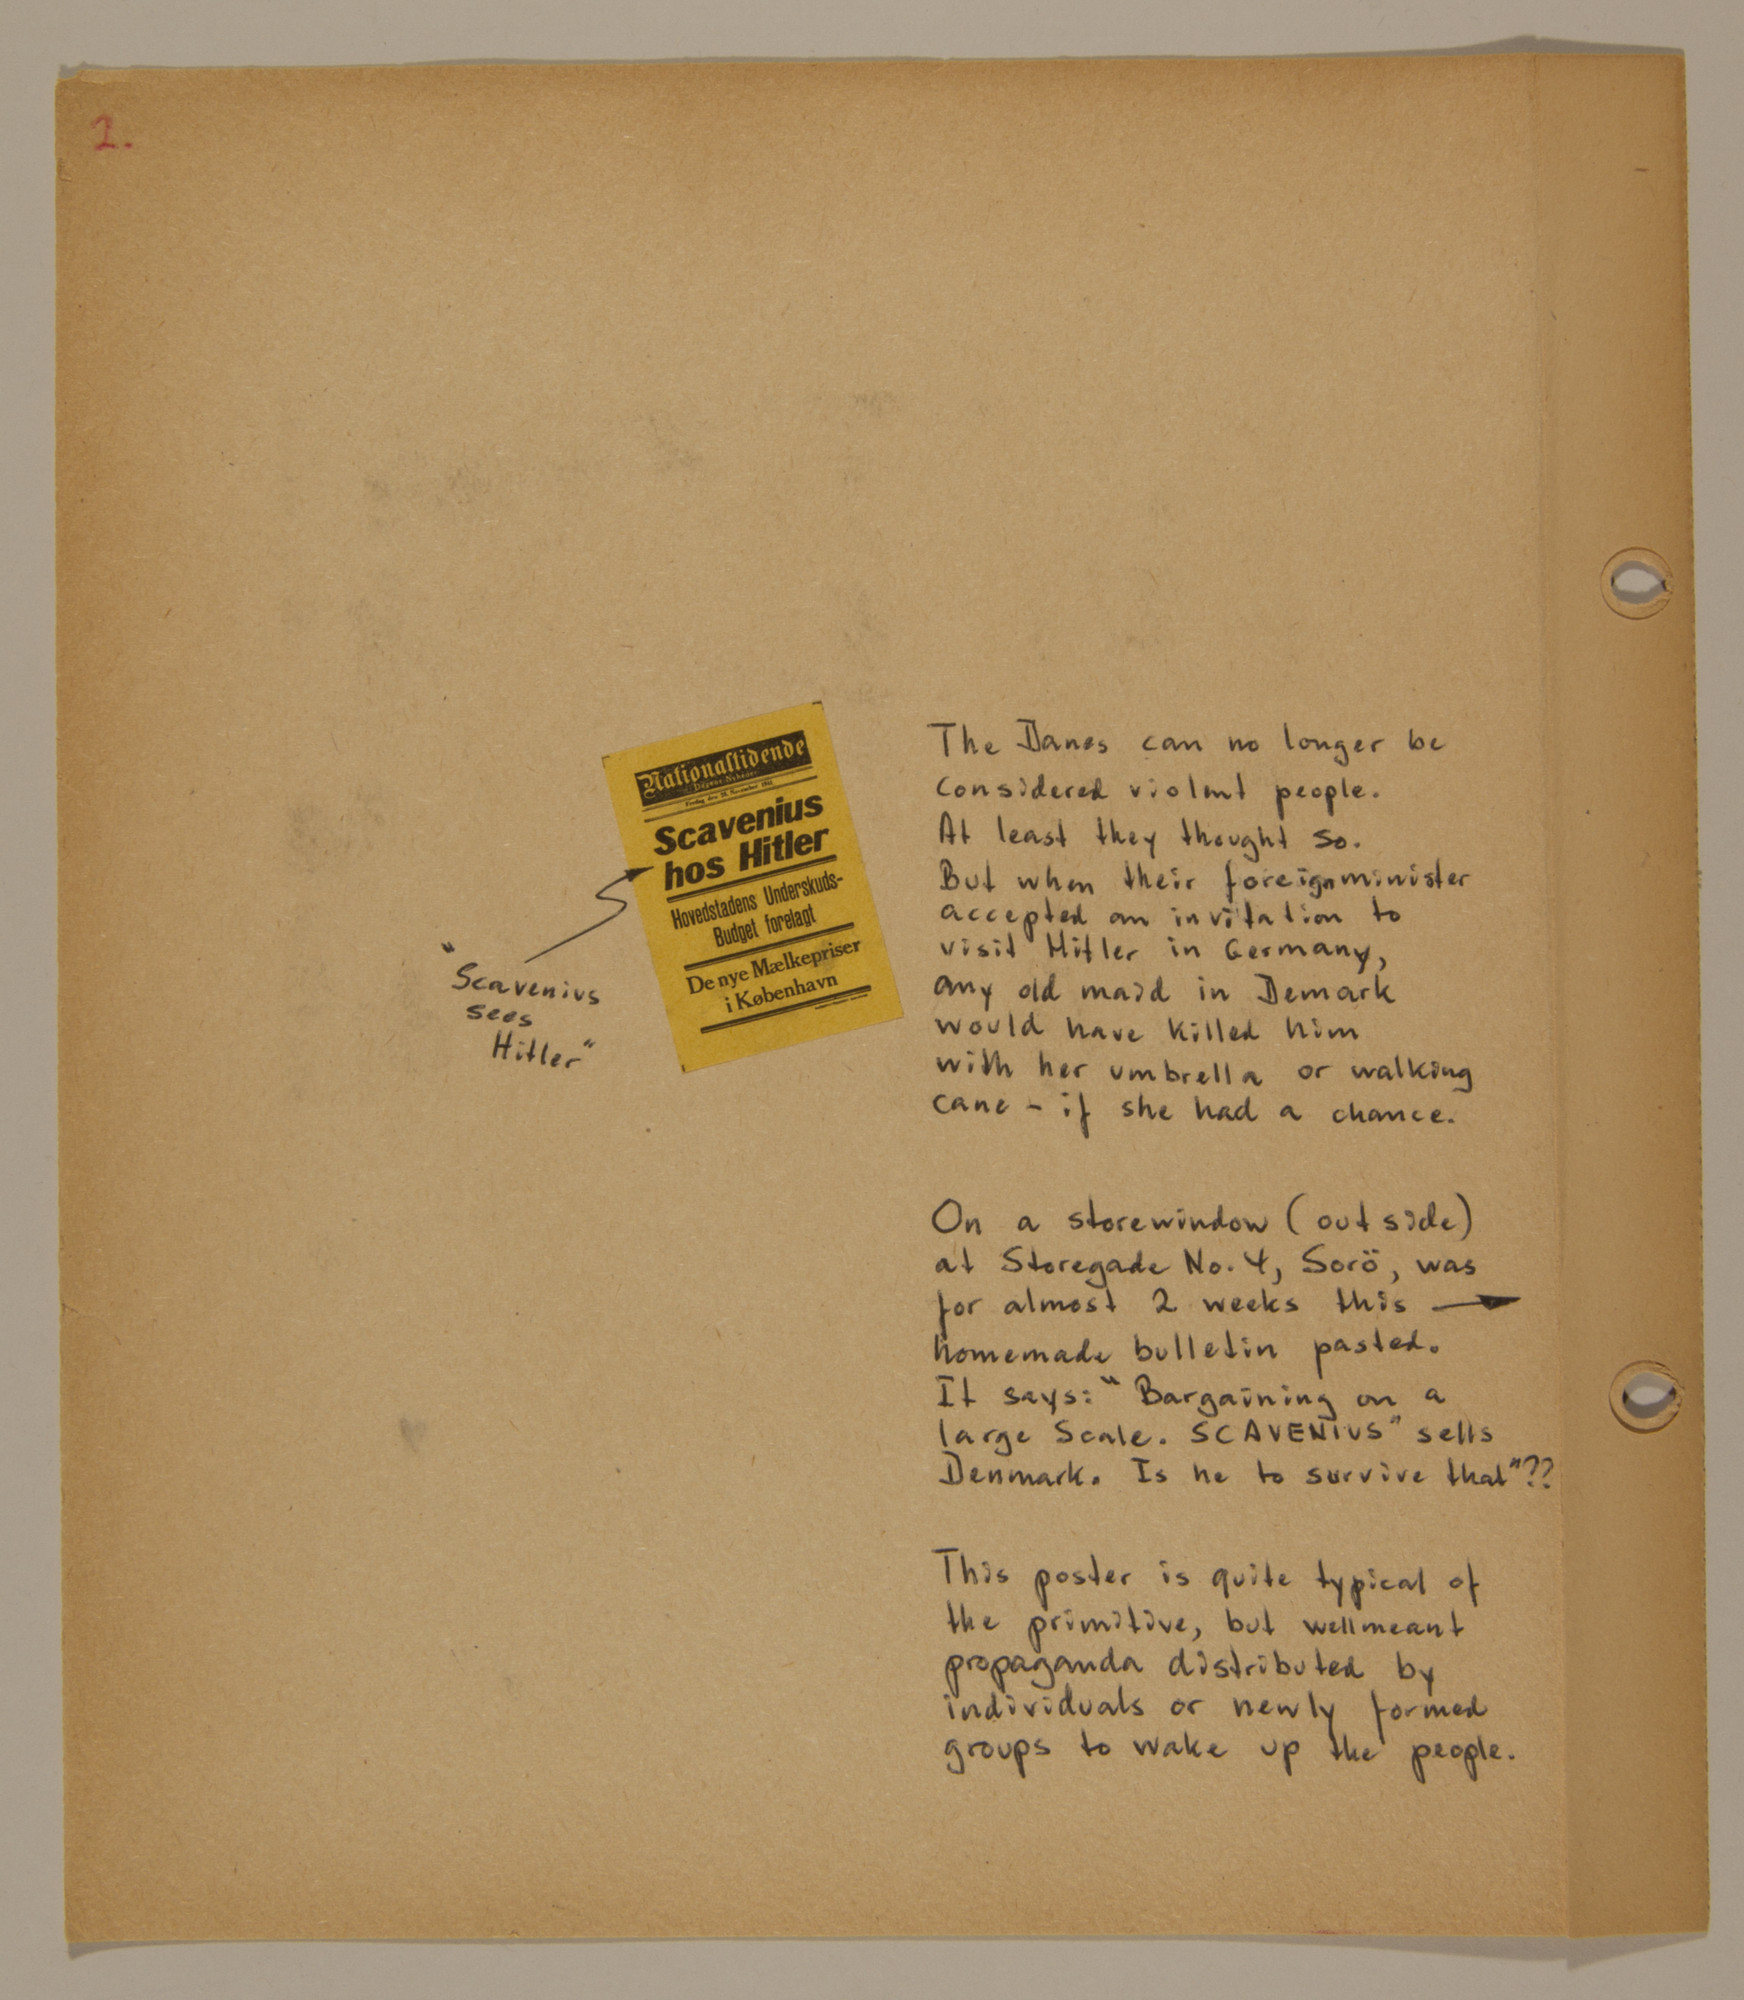 Page from volume two of a set of scrapbooks compiled by Bjorn Sibbern, a Danish policeman and resistance member, documenting the German occupation of Denmark.  This page documents the decision of Scavenius to visit Hitler and the resistance that ensued.